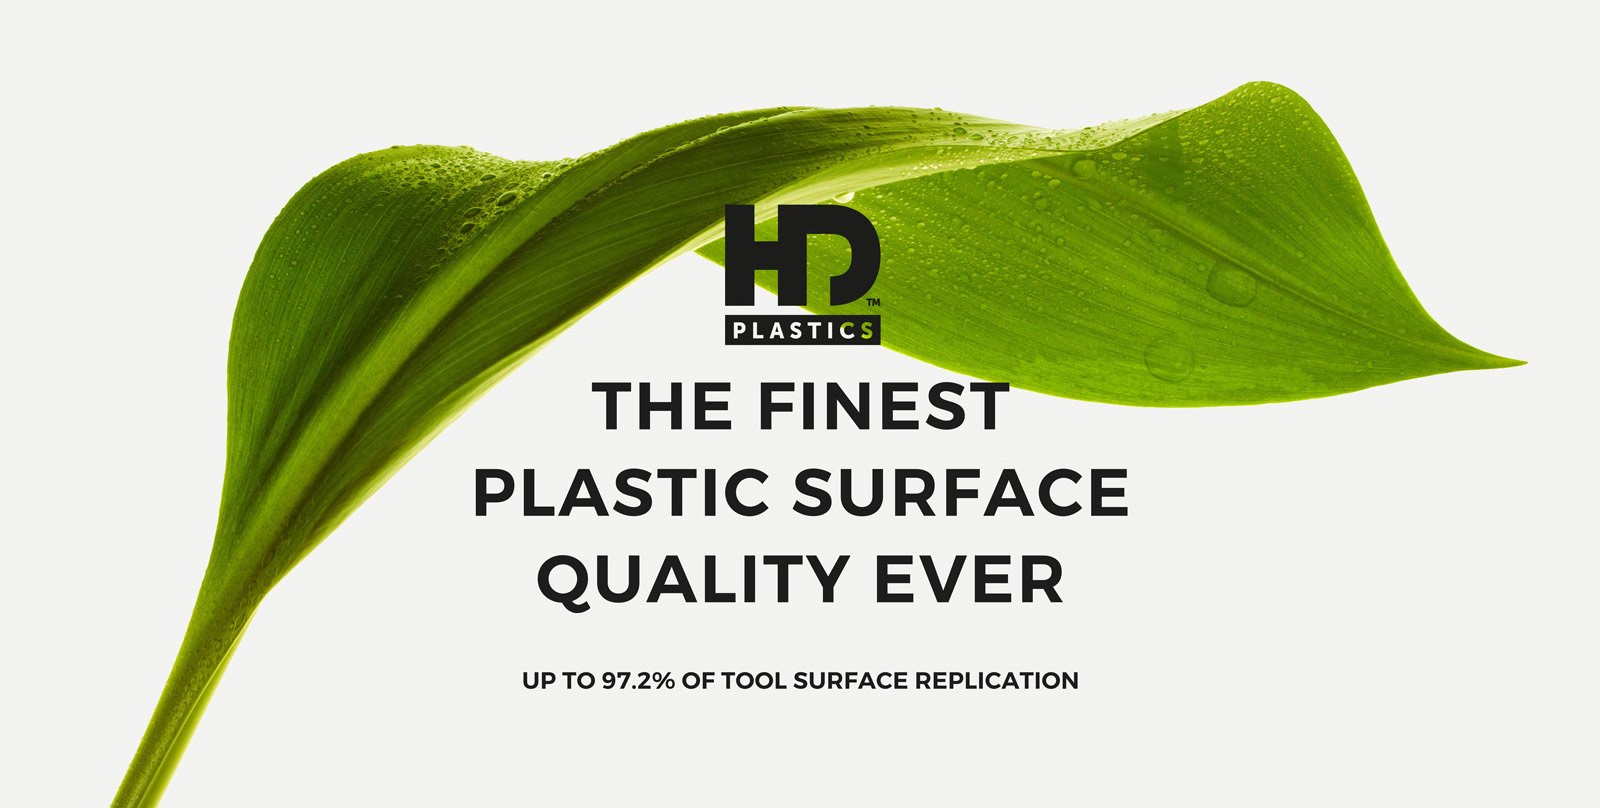 Green Leaf and HD Plastics